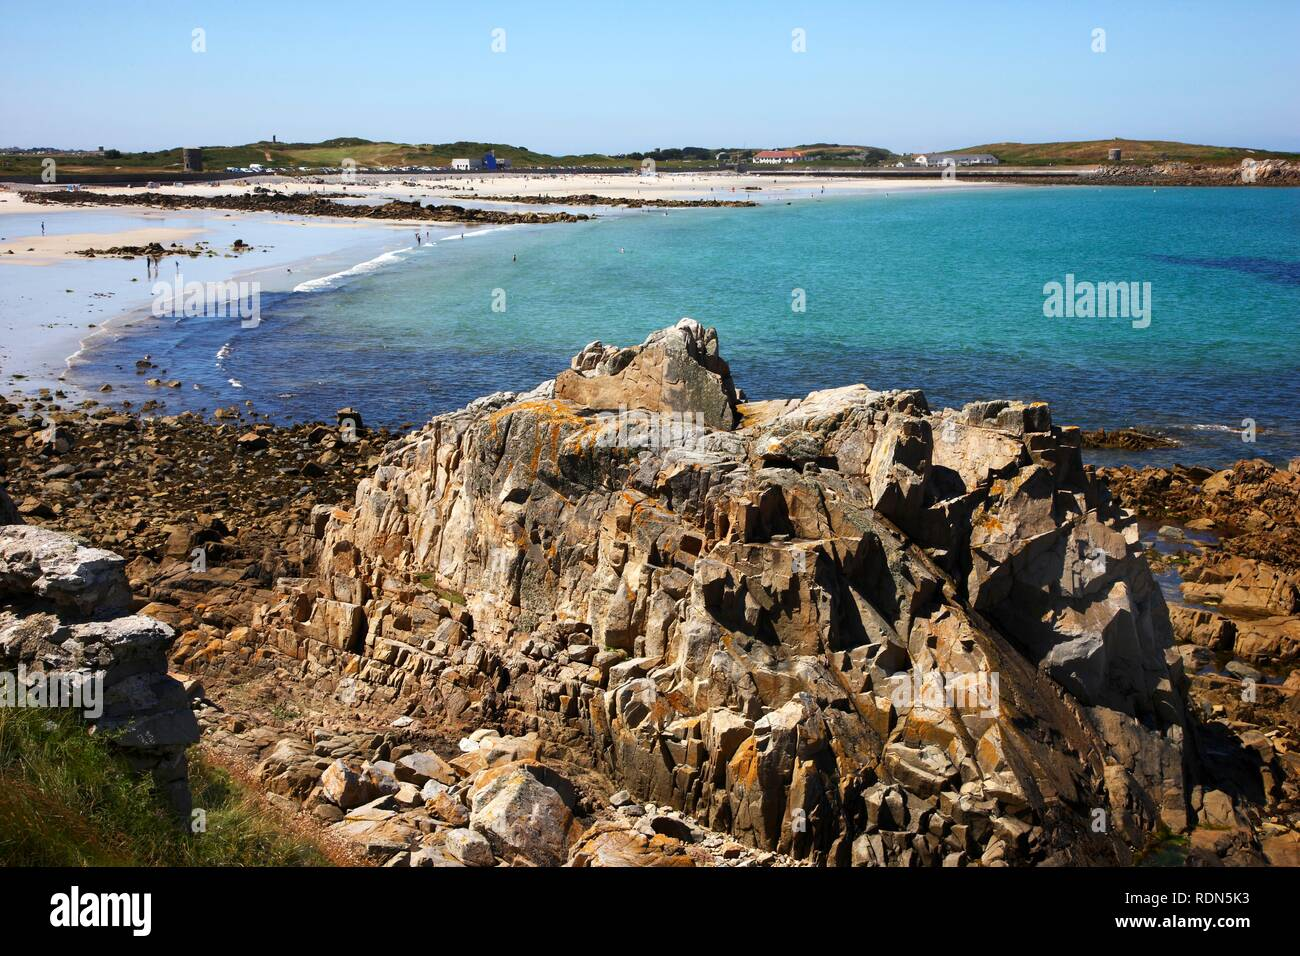 Beach, Pembroke Bay in the northeast of of Guernsey, Channel Islands, Europe - Stock Image